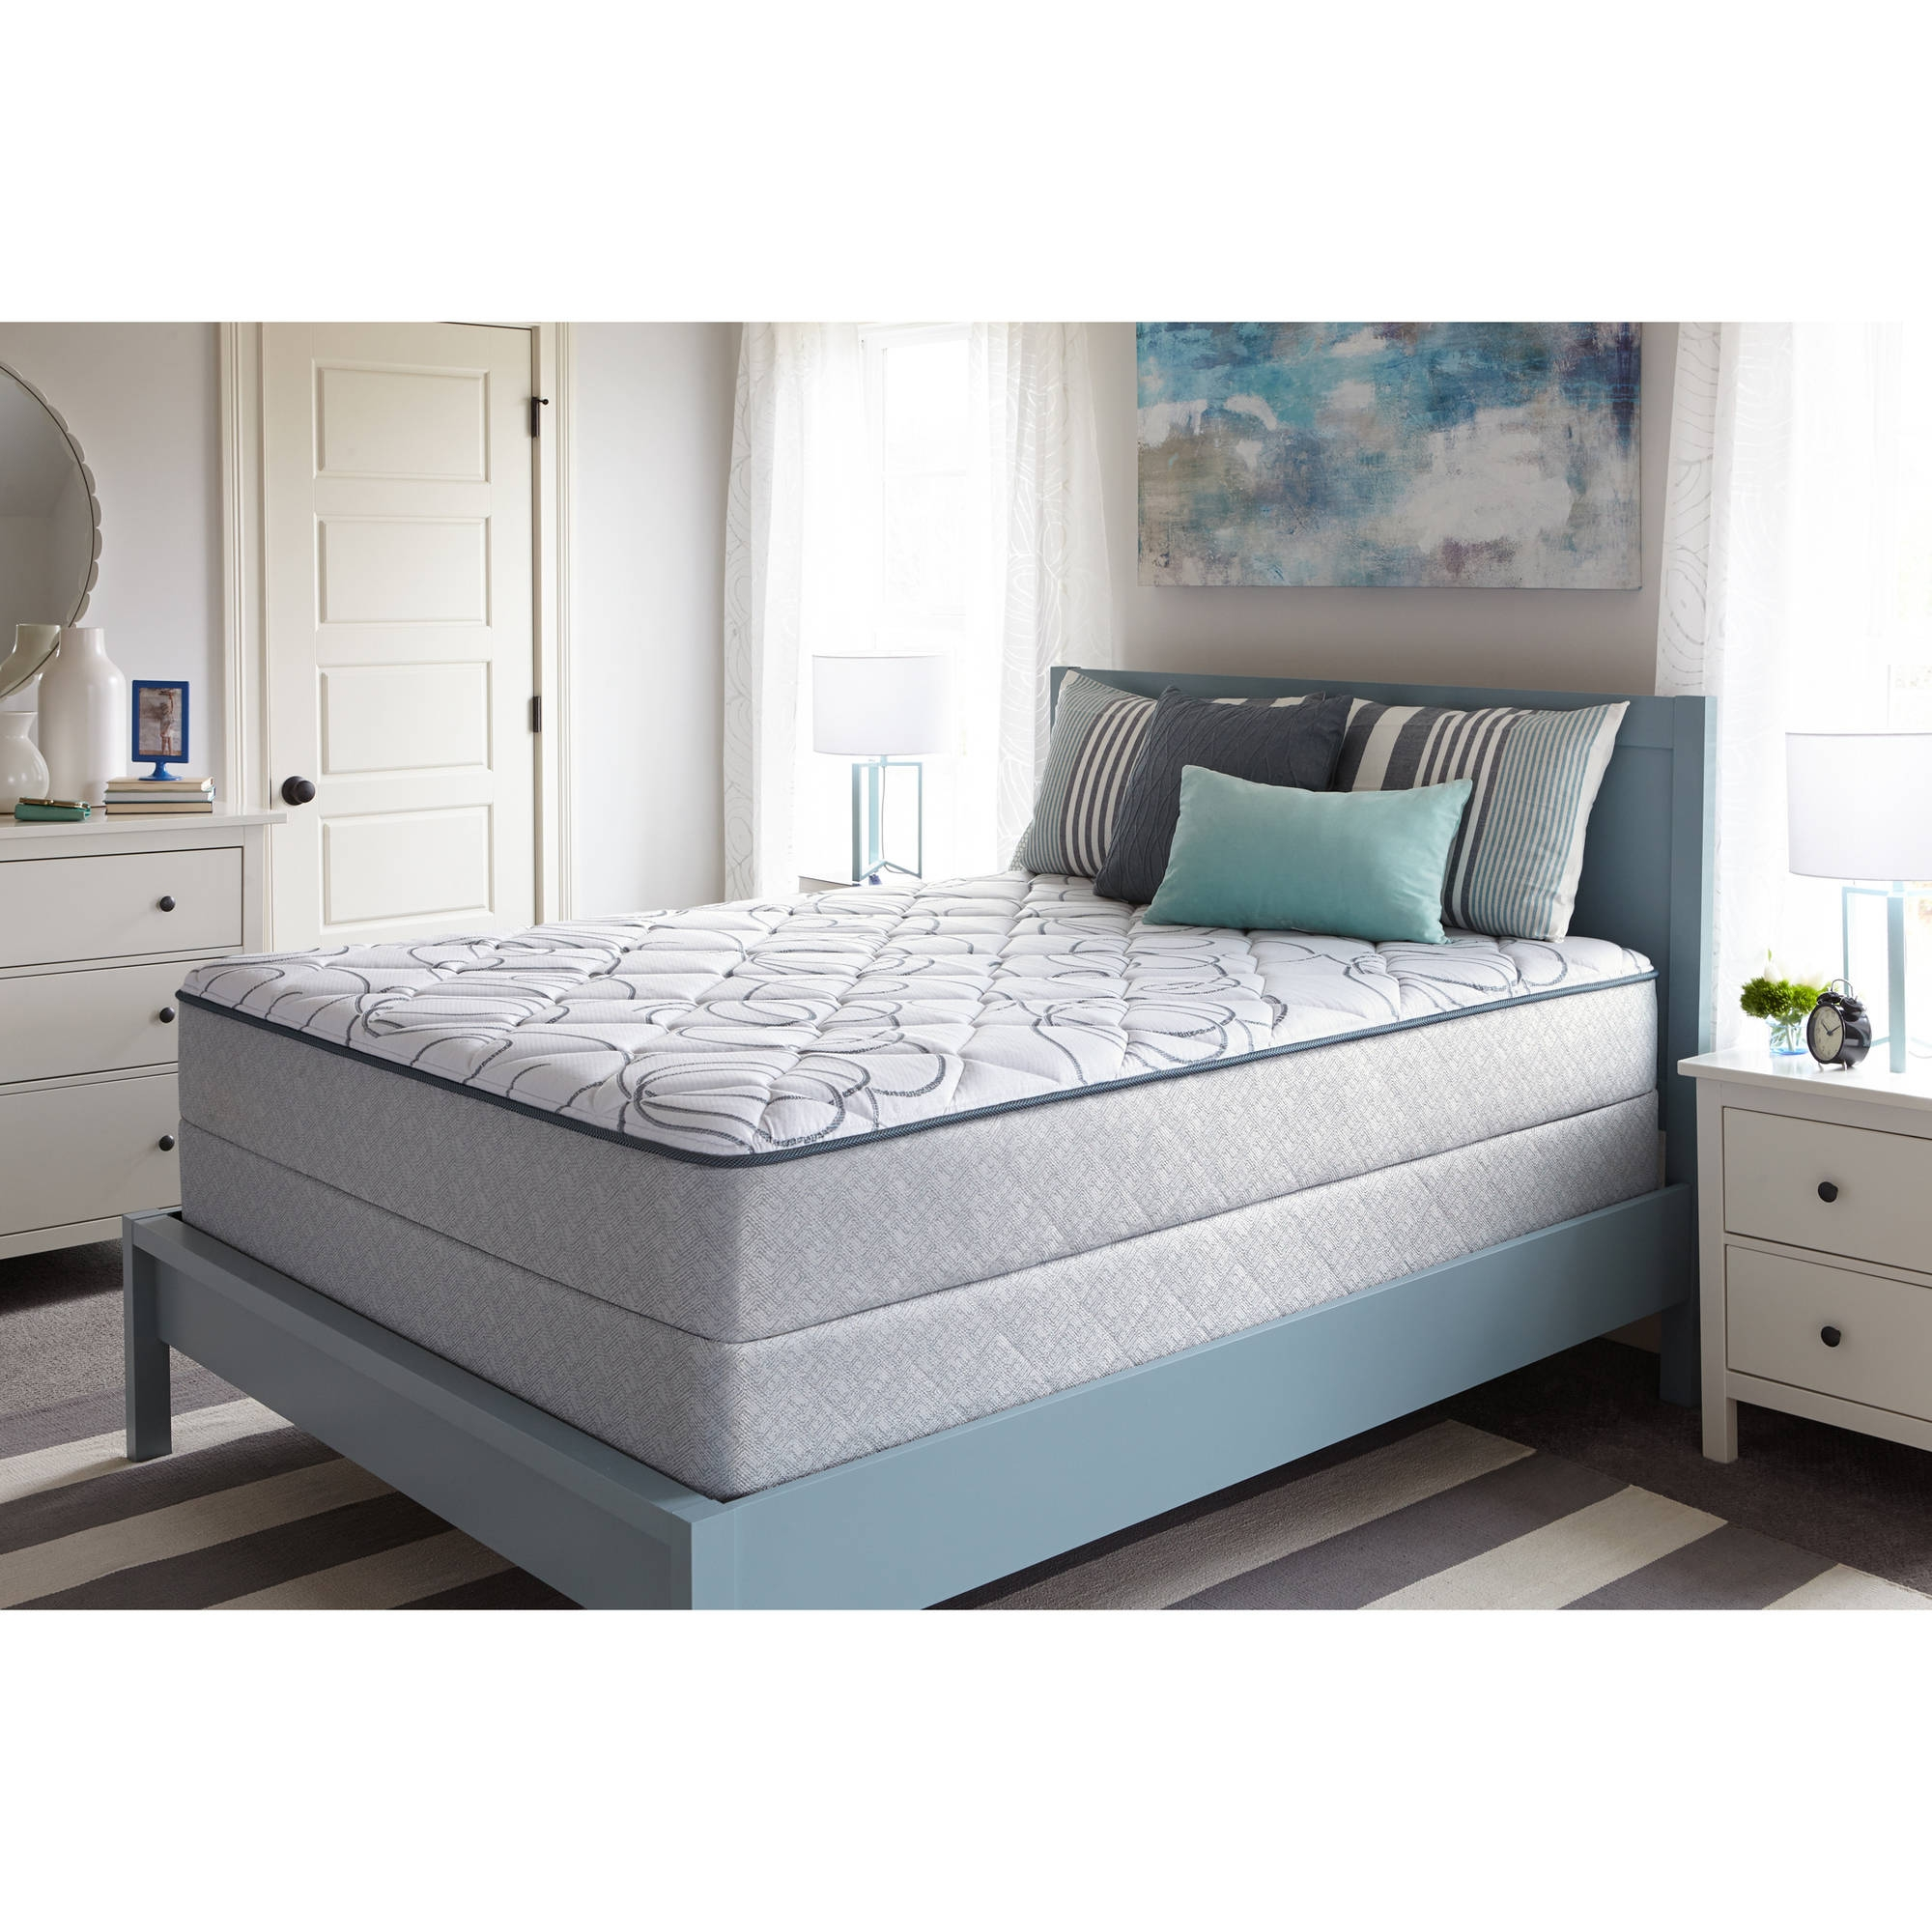 King Bed Frame Mattress Firm